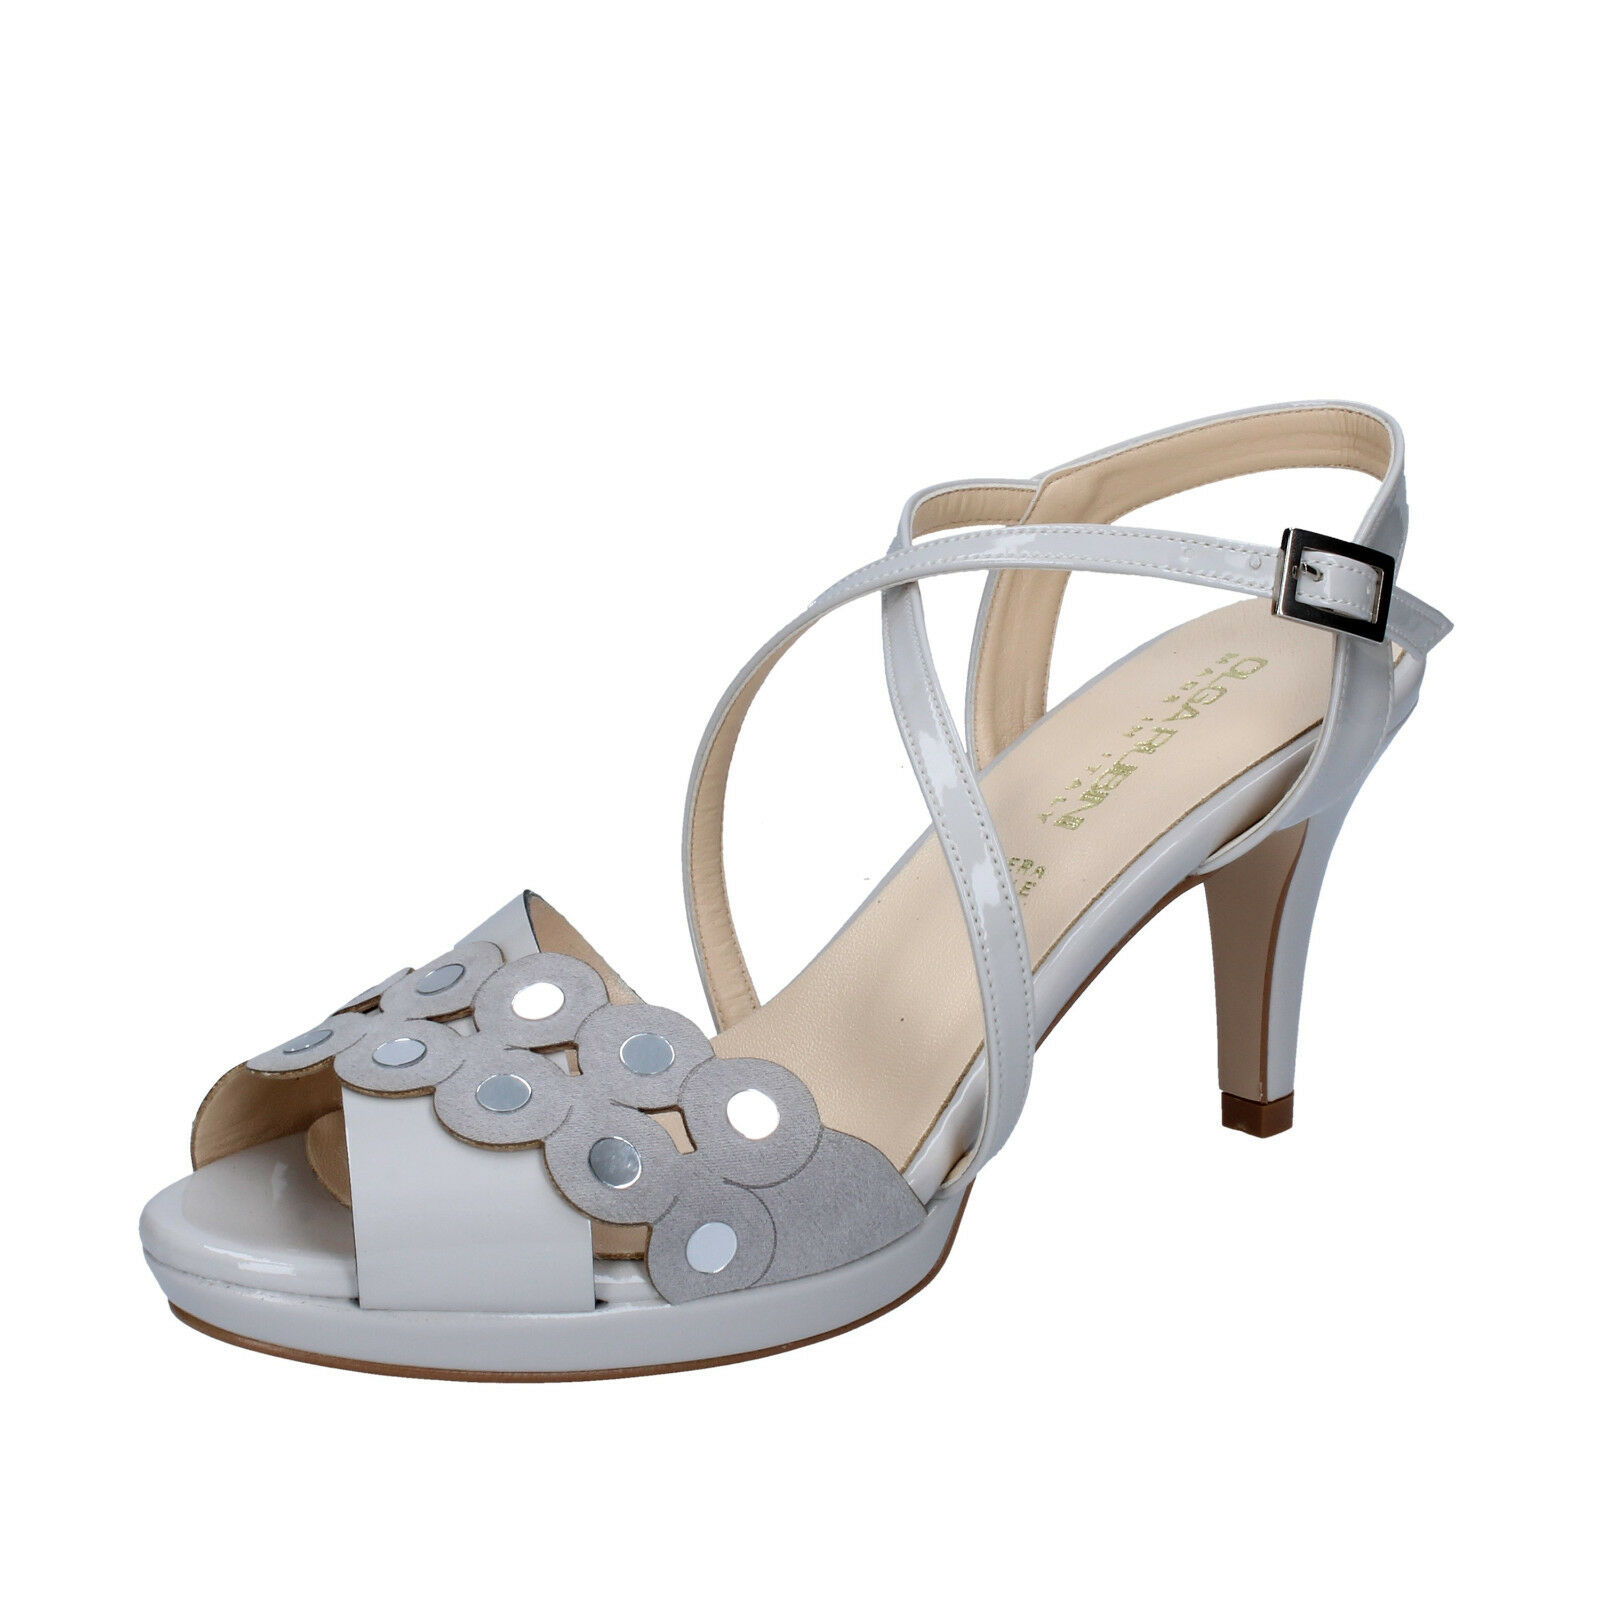 Women's shoes Olga Rubies 39 EU Sandals Grey Suede Paint by358-e